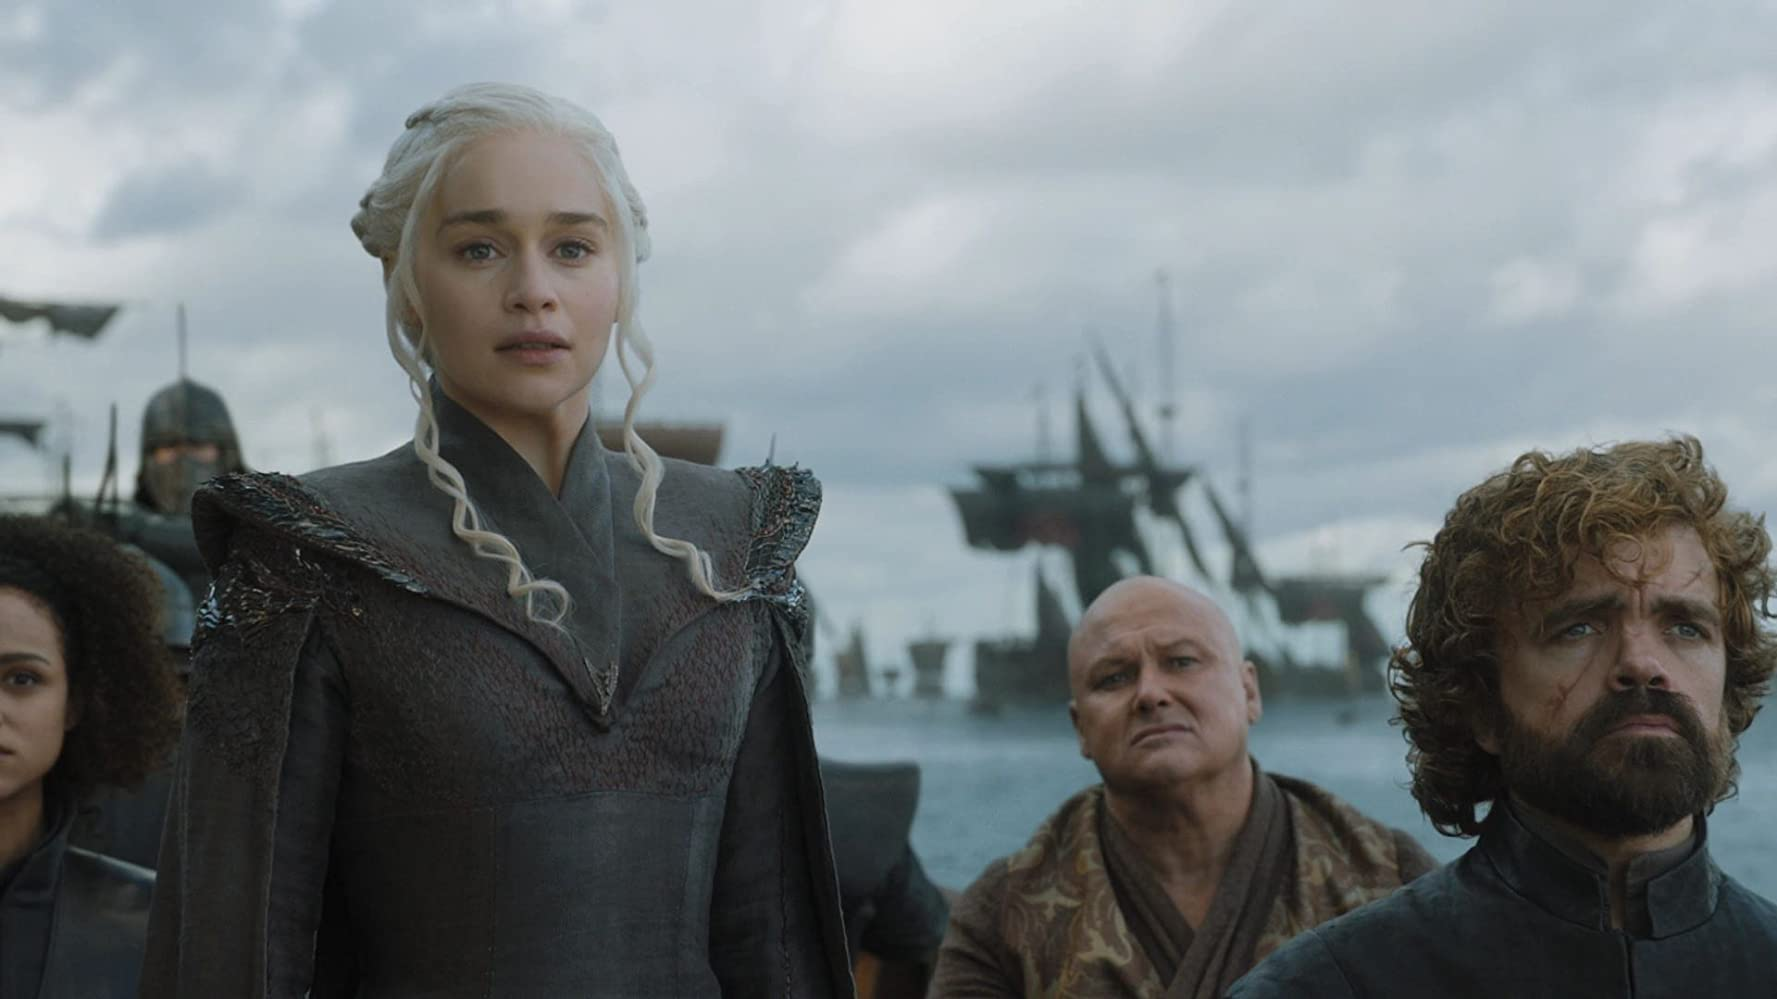 Peter Dinklage, Conleth Hill, and Emilia Clarke in Game of Thrones (2011)